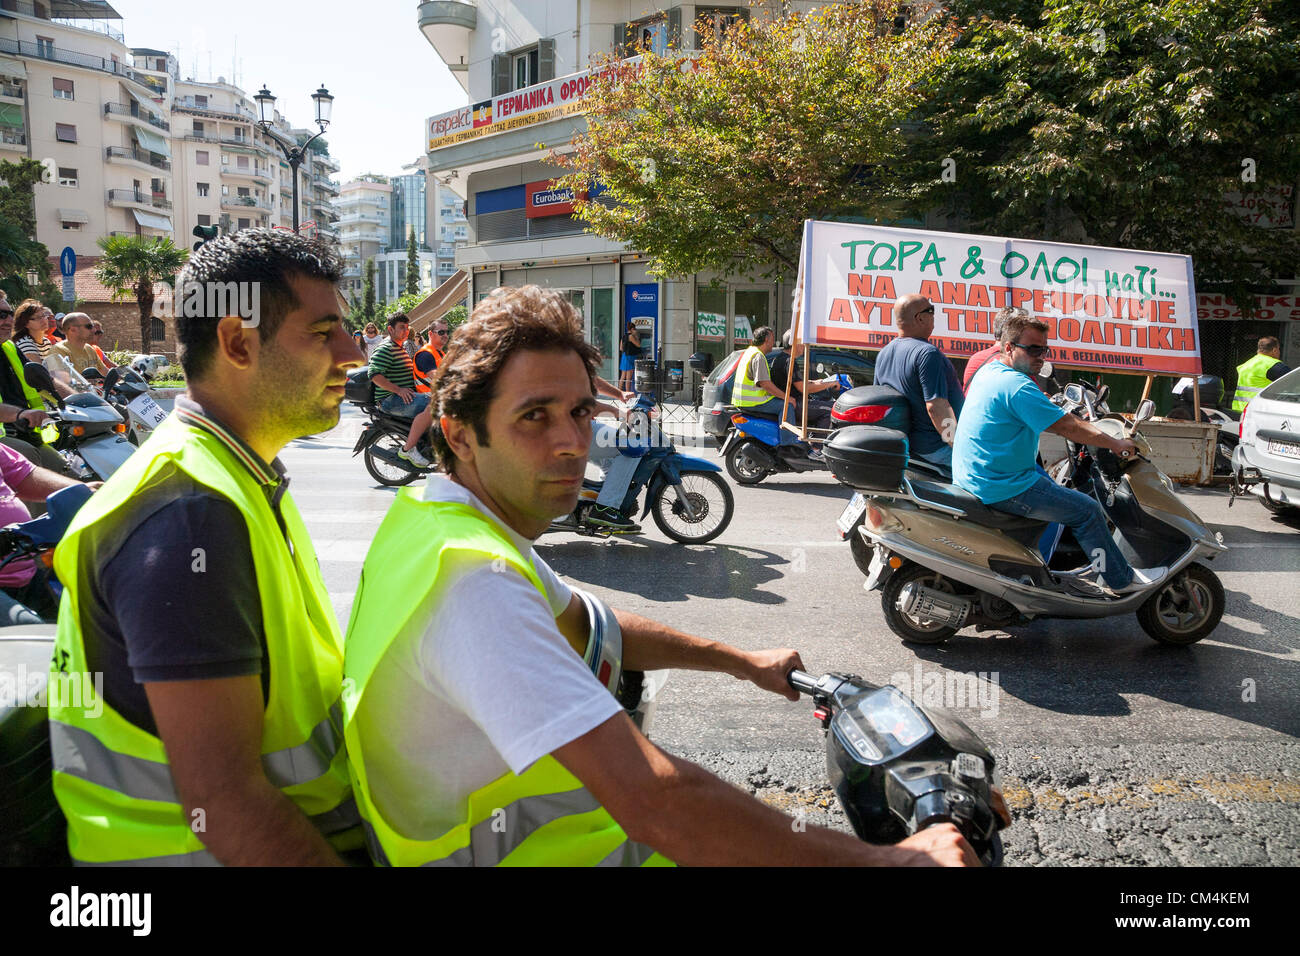 Thessaloniki, Greece. 3rd October 2012. Motorized march from workers to local authorities in Thessaloniki. Protest - Stock Image